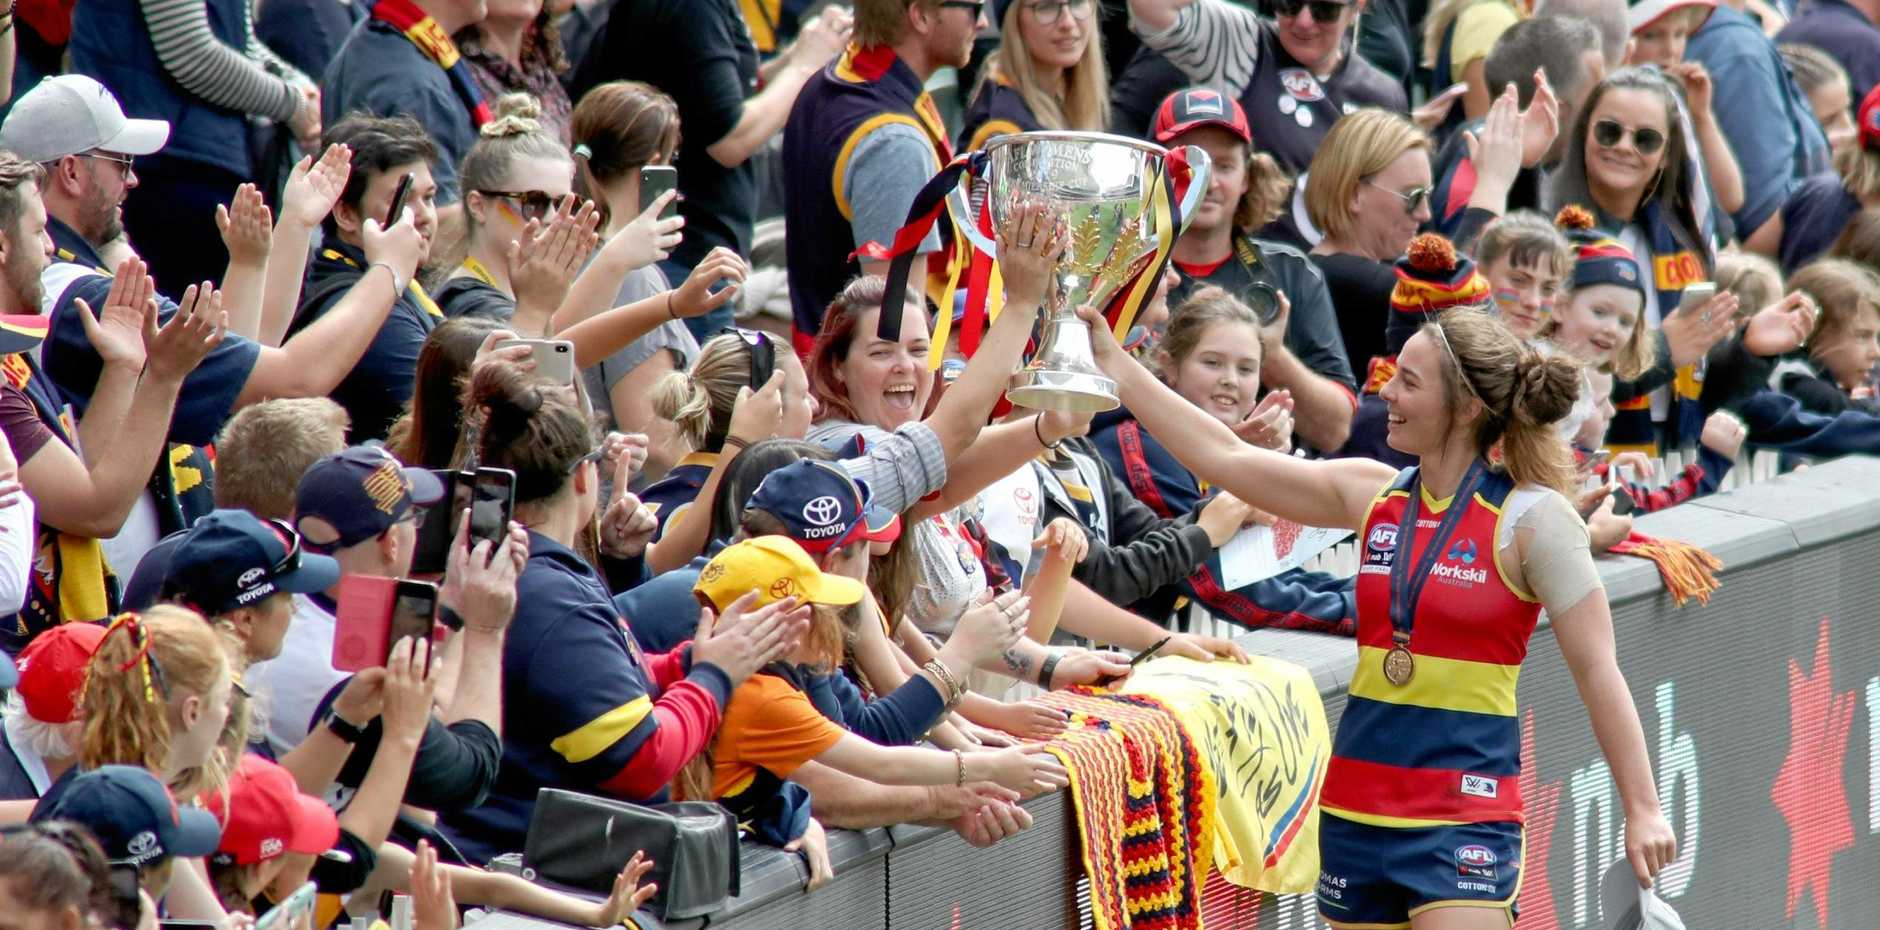 Jenna McCormick of the crows celebrates with fans during the AFLW grand final match between the Adelaide Crows and the Carlton Blues at Adelaide Oval in Adelaide, Sunday, March 31, 2019. (AAP Image/Kelly Barnes) NO ARCHIVING, EDITORIAL USE ONLY